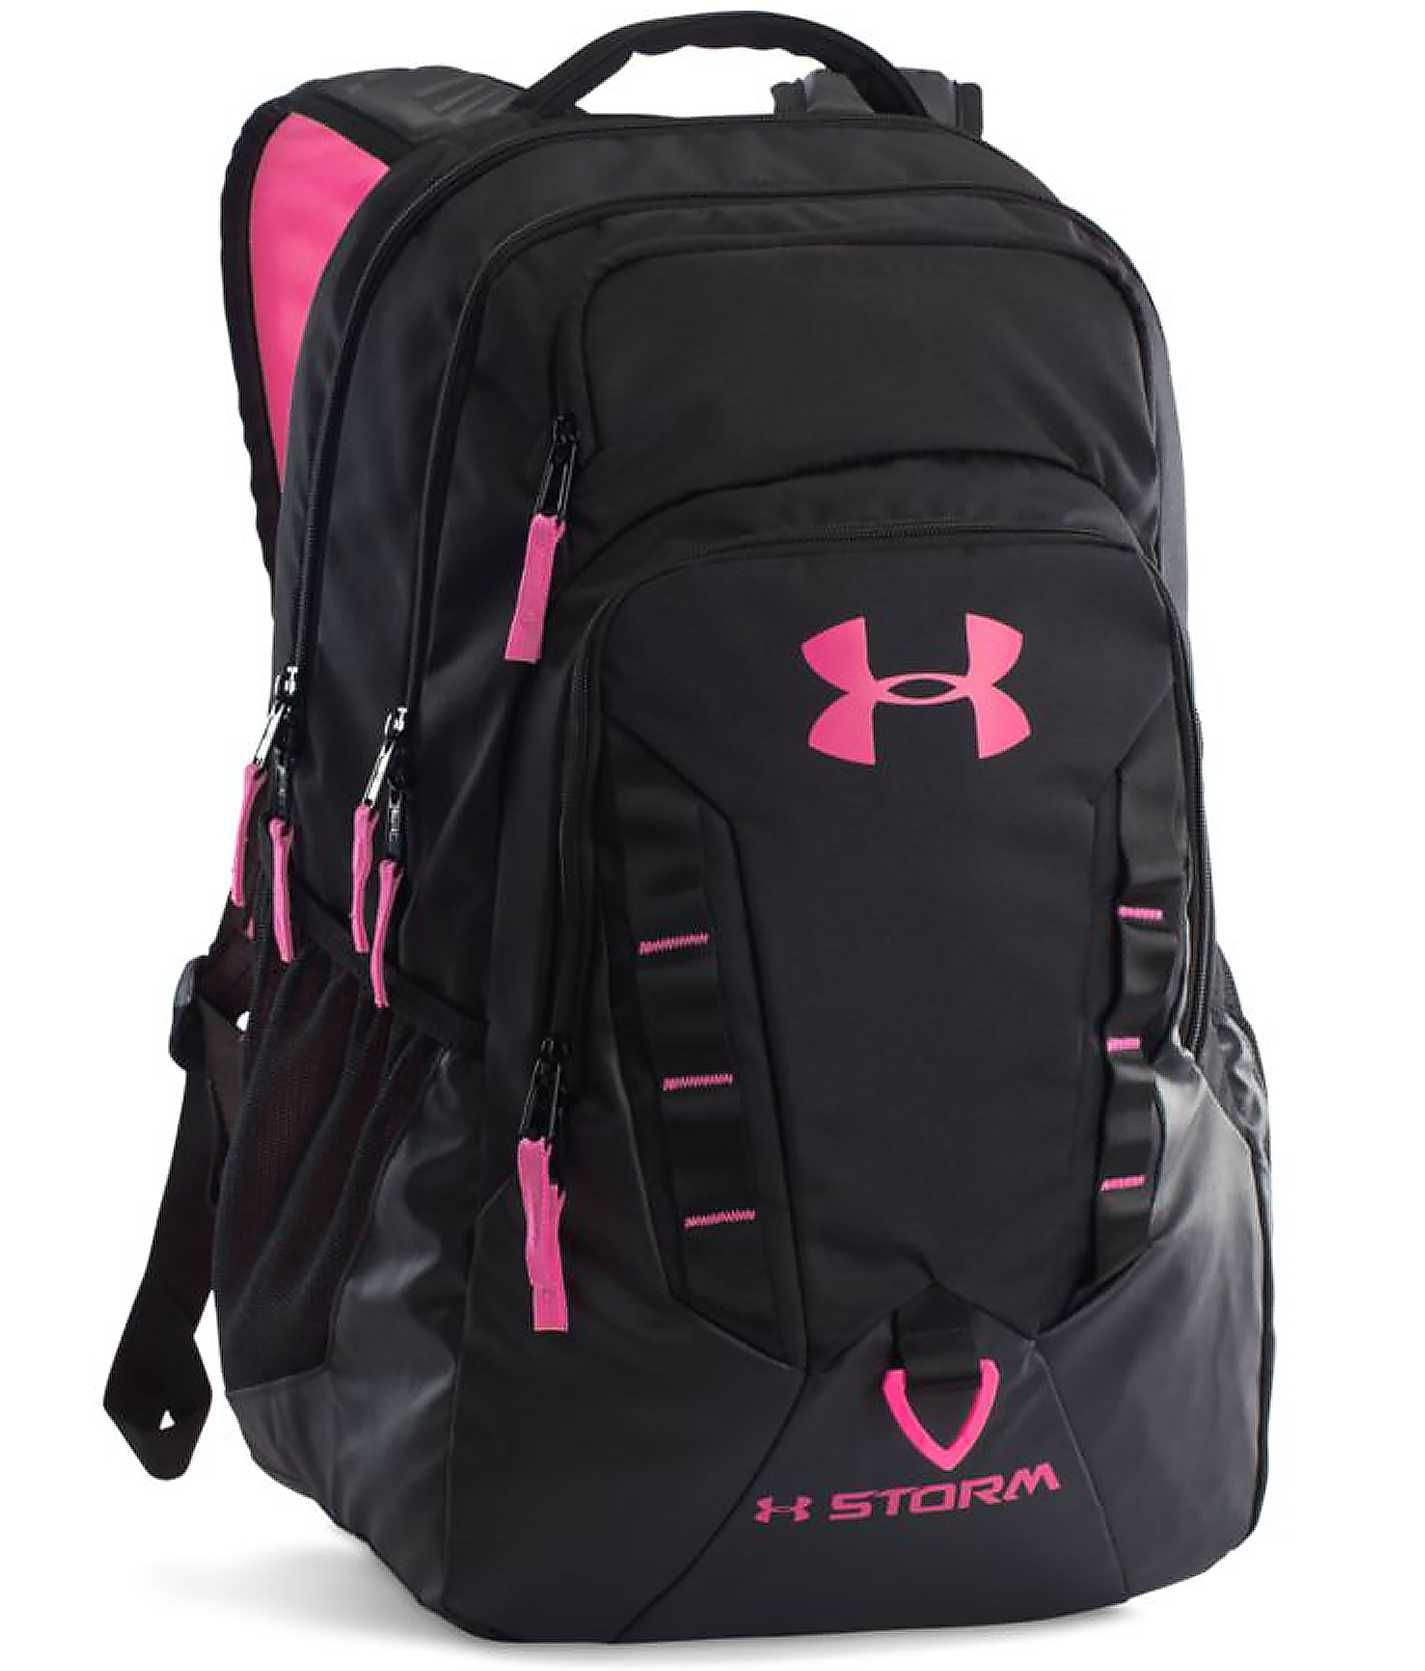 8e0db1feca1f Black Under Armour Backpack. Under Armour® Recruit Backpack - Women s Bags  and Activewear